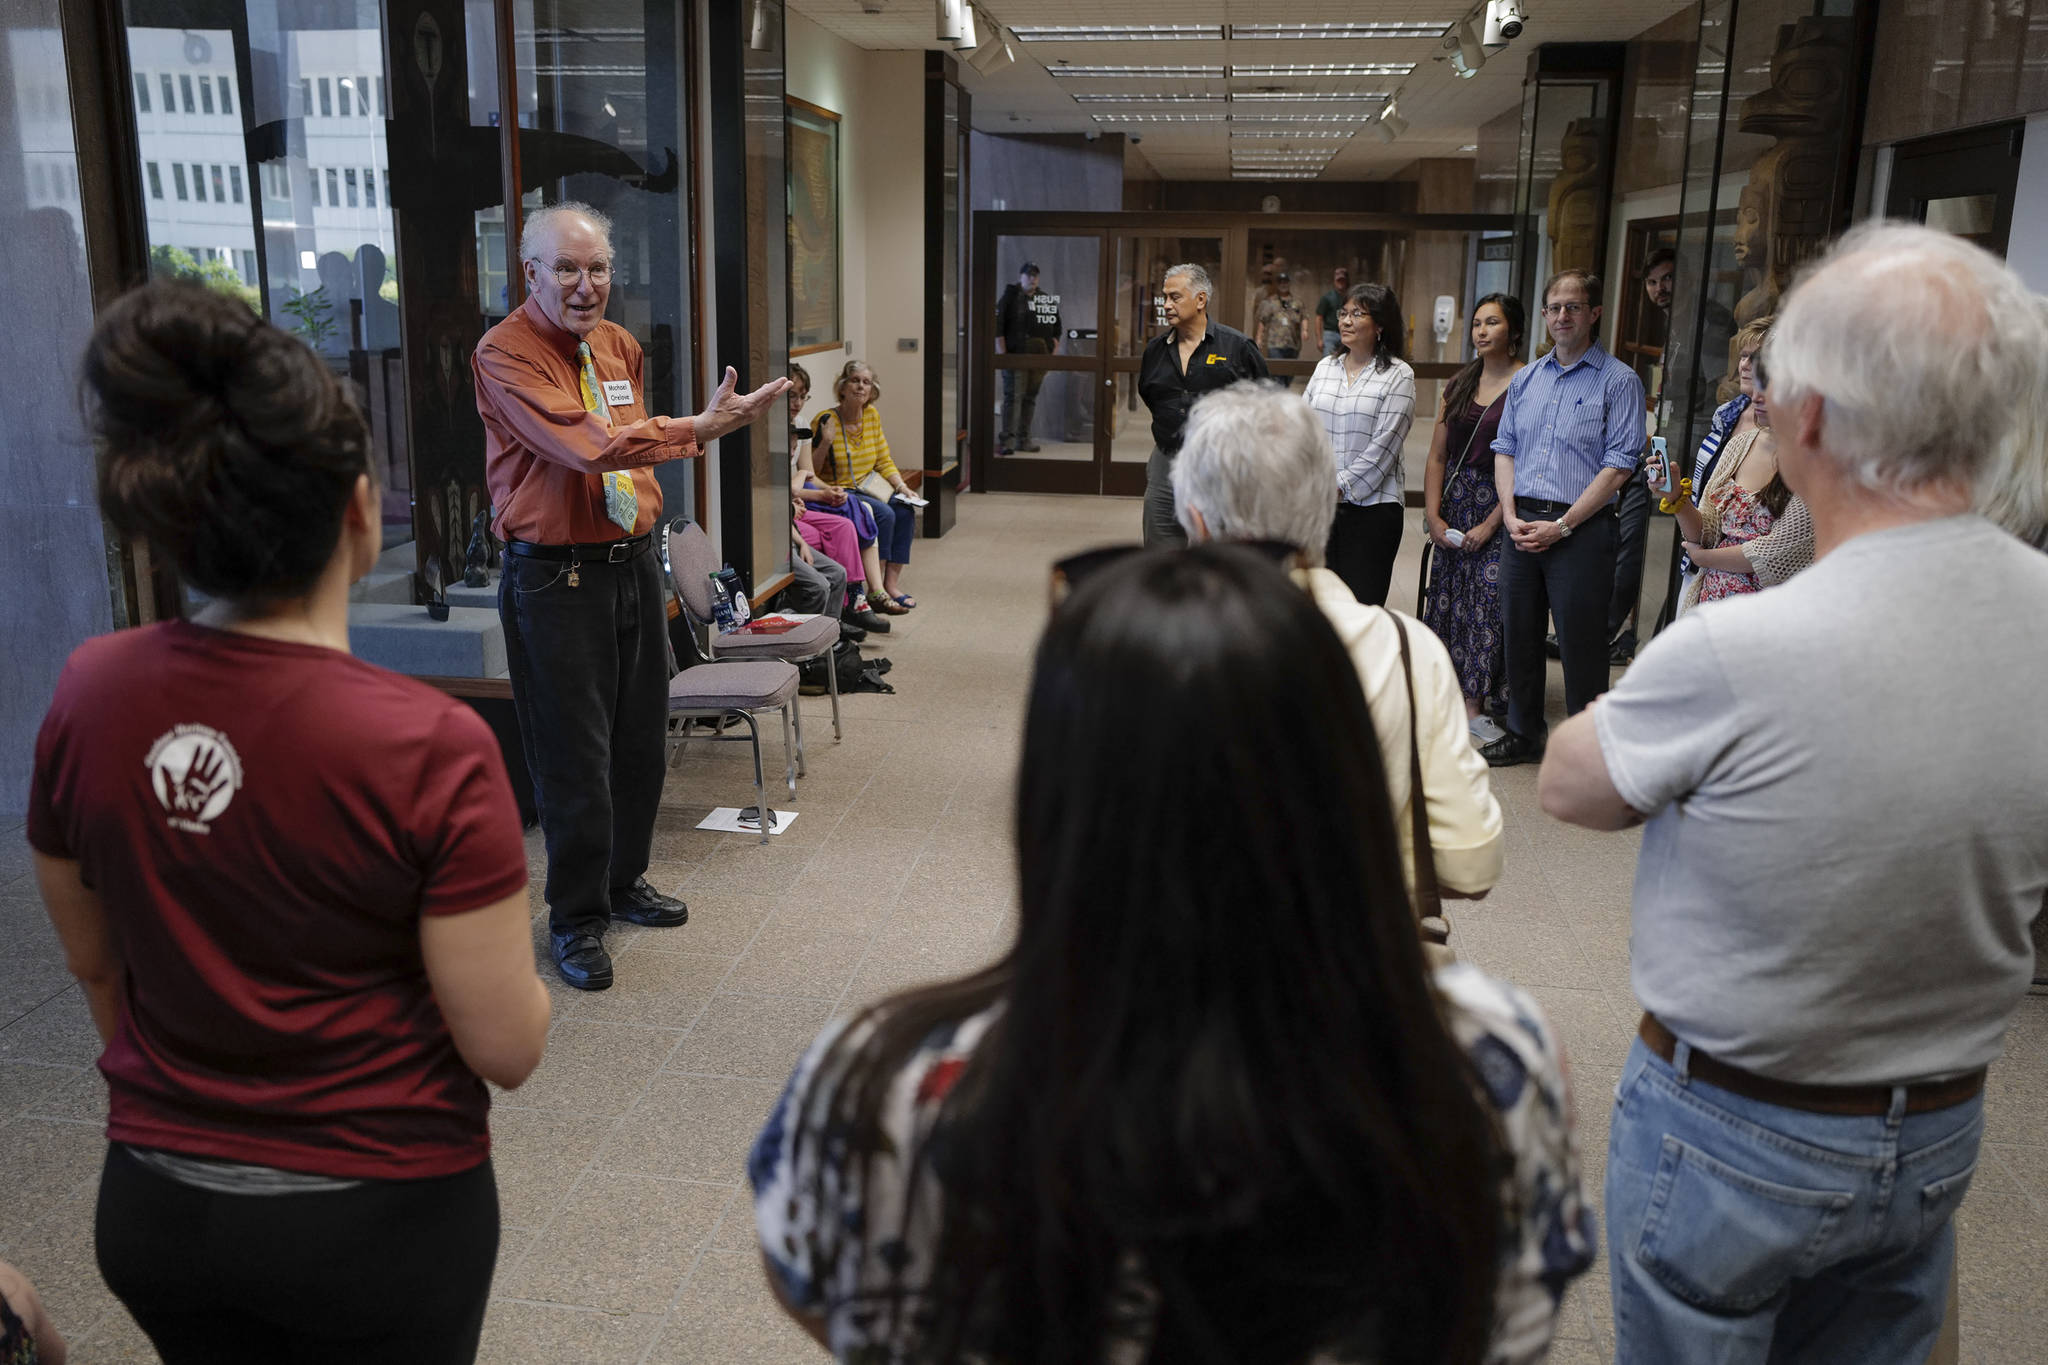 Michael Orelove talks about the making of the 1994 Juneau Time Capsule on its 25th anniversary at the Hurff Ackerman Saunders Federal Building in Juneau on Friday, Aug. 9, 2019. (Michael Penn | Juneau Empire)